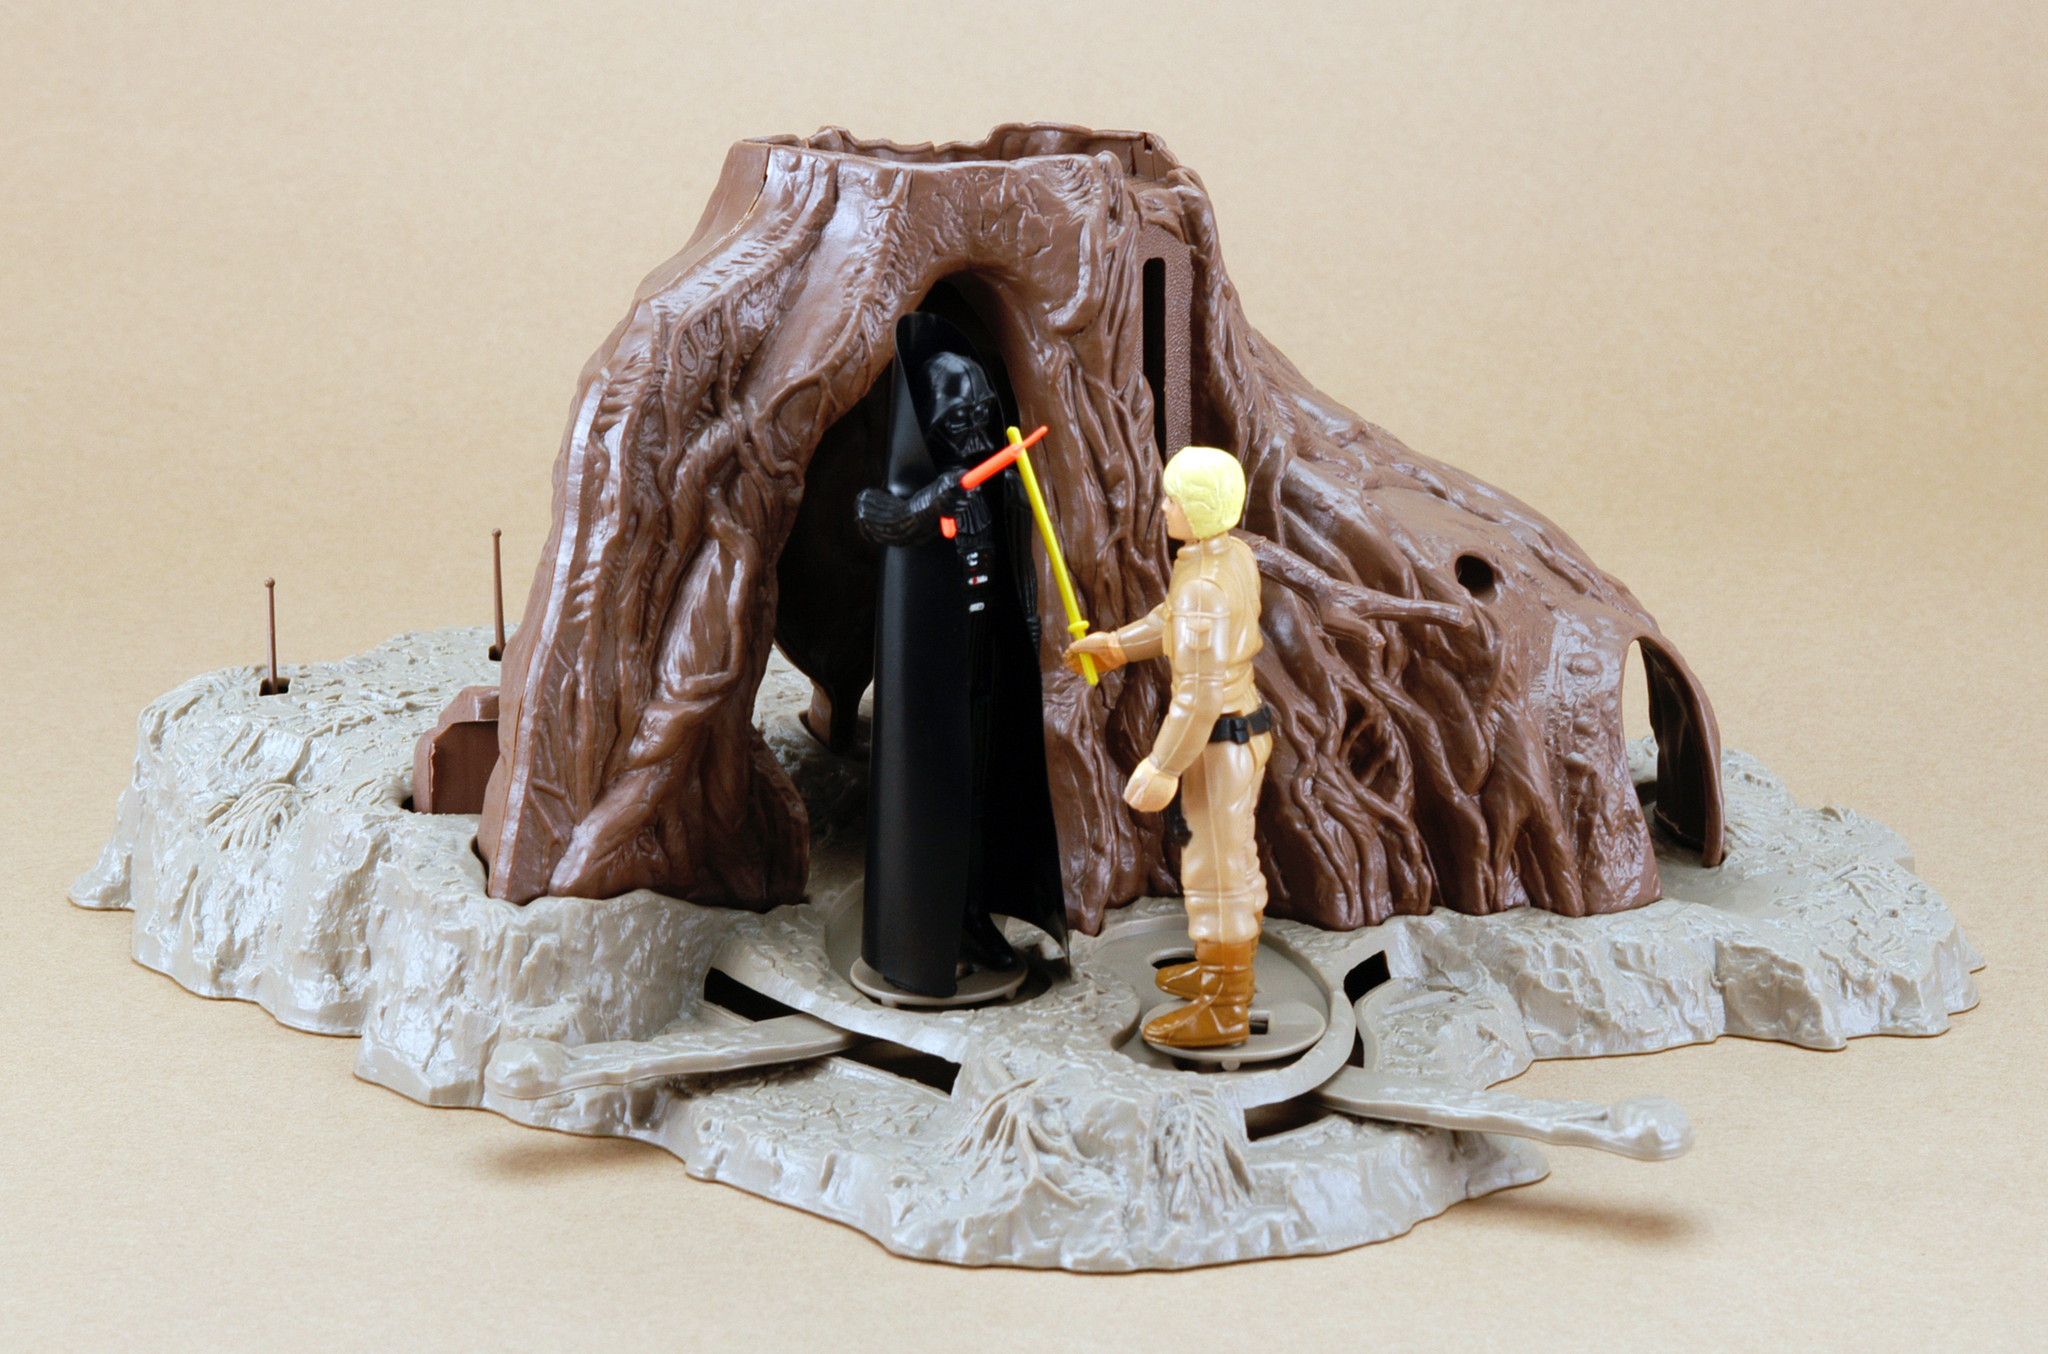 Star Wars toys the force that binds the galaxy to her LA Times